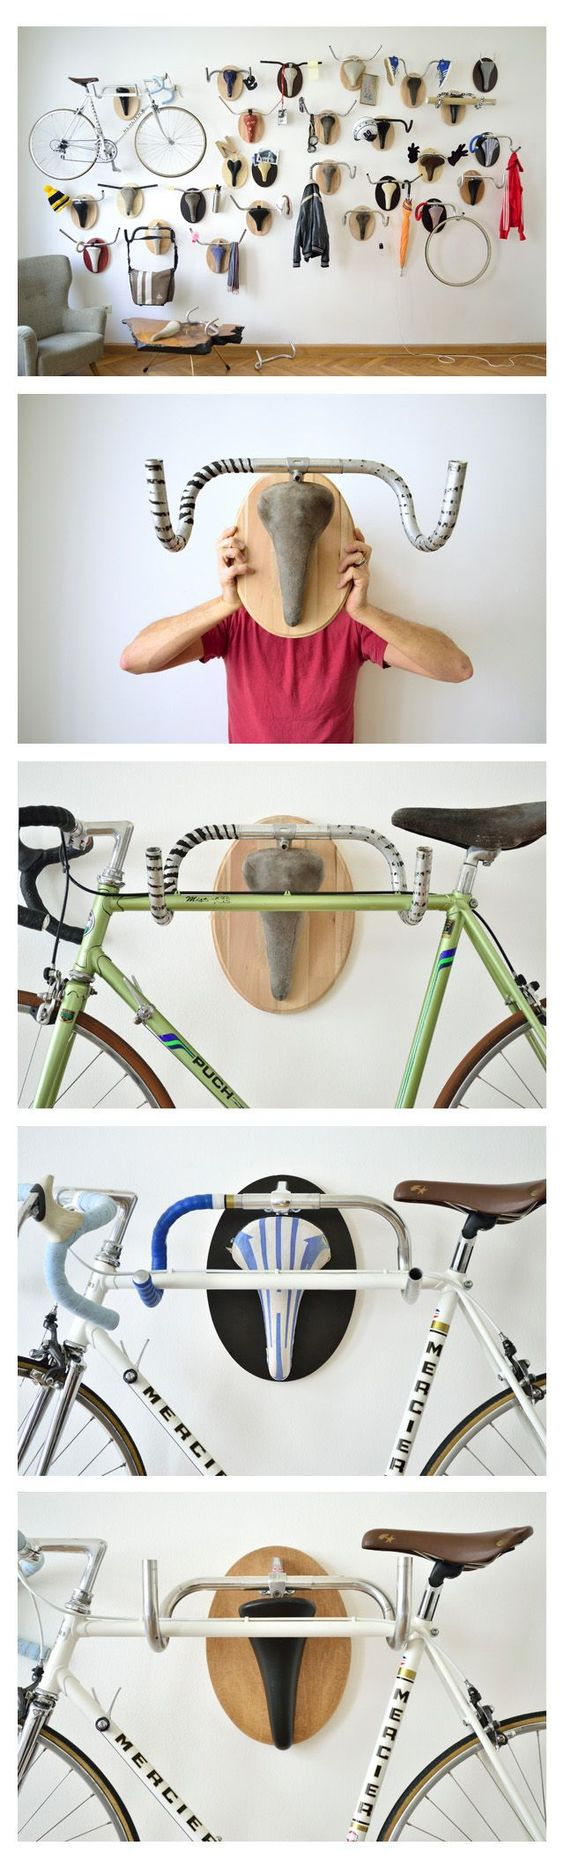 Look jeremy s bicycle rack apartment therapy - Almost Like A Skull Rack But A Bikes Bar And Seat As A Bike Or Anything Really Rack Top Pins Pinterest Bar Upcycle And Bicycling